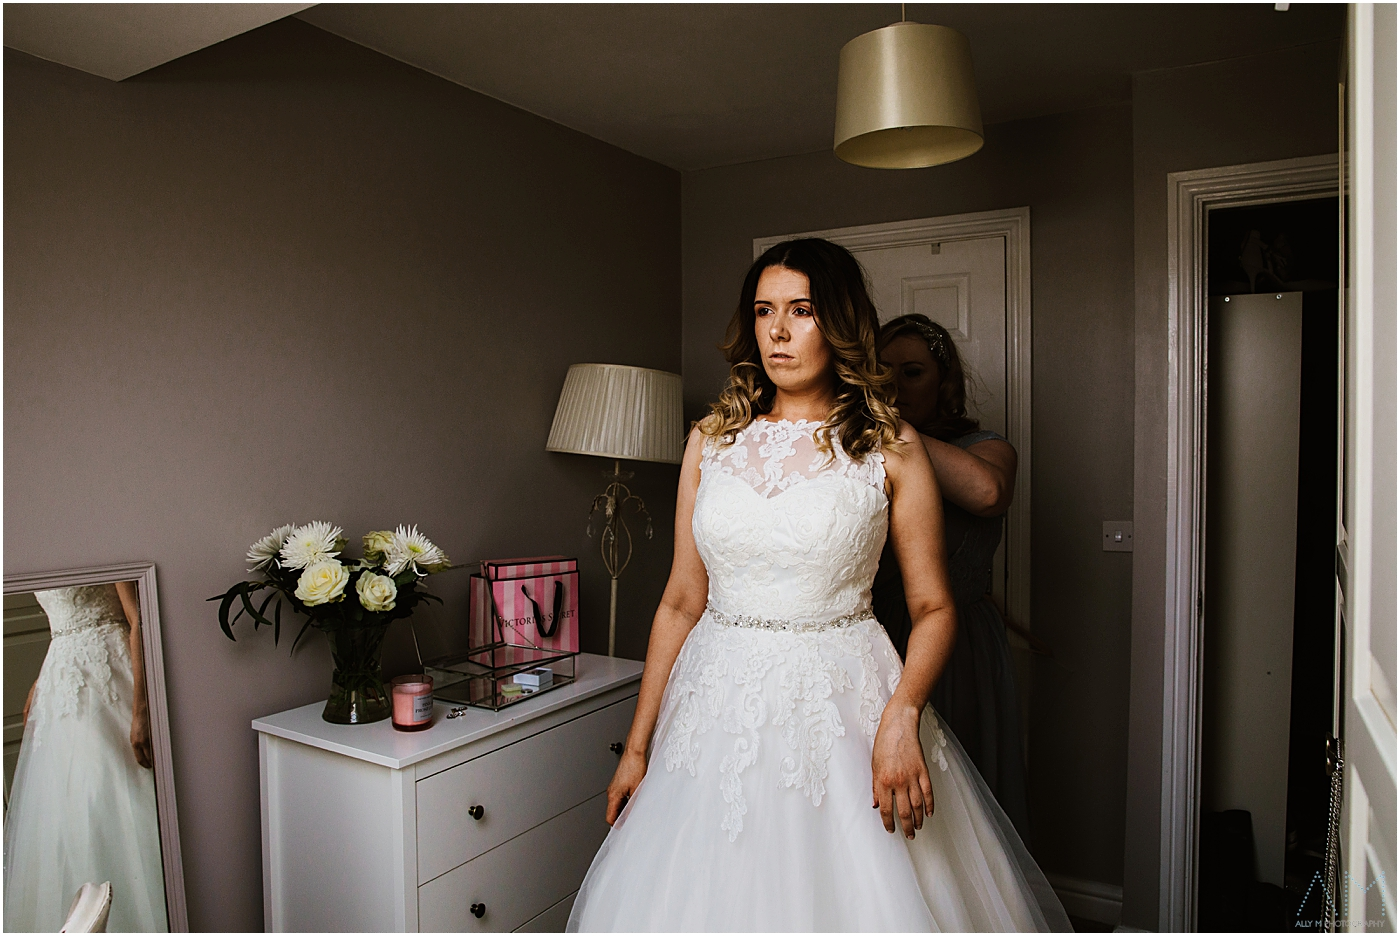 Bride getting help with her wedding dress